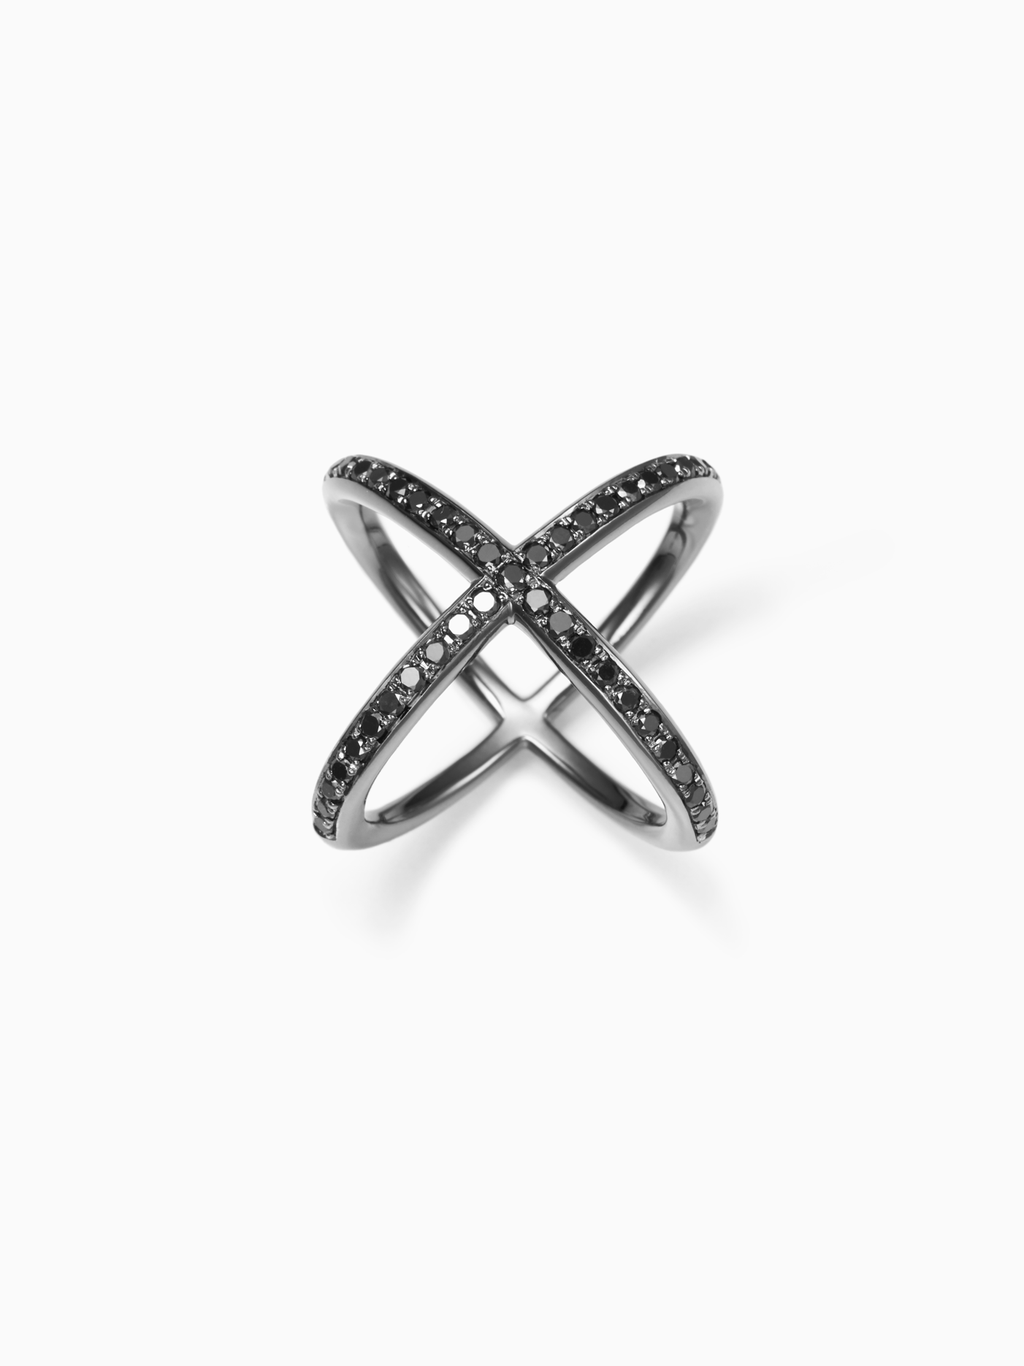 Mobius S / Phalange Ring / Diamond / Silver